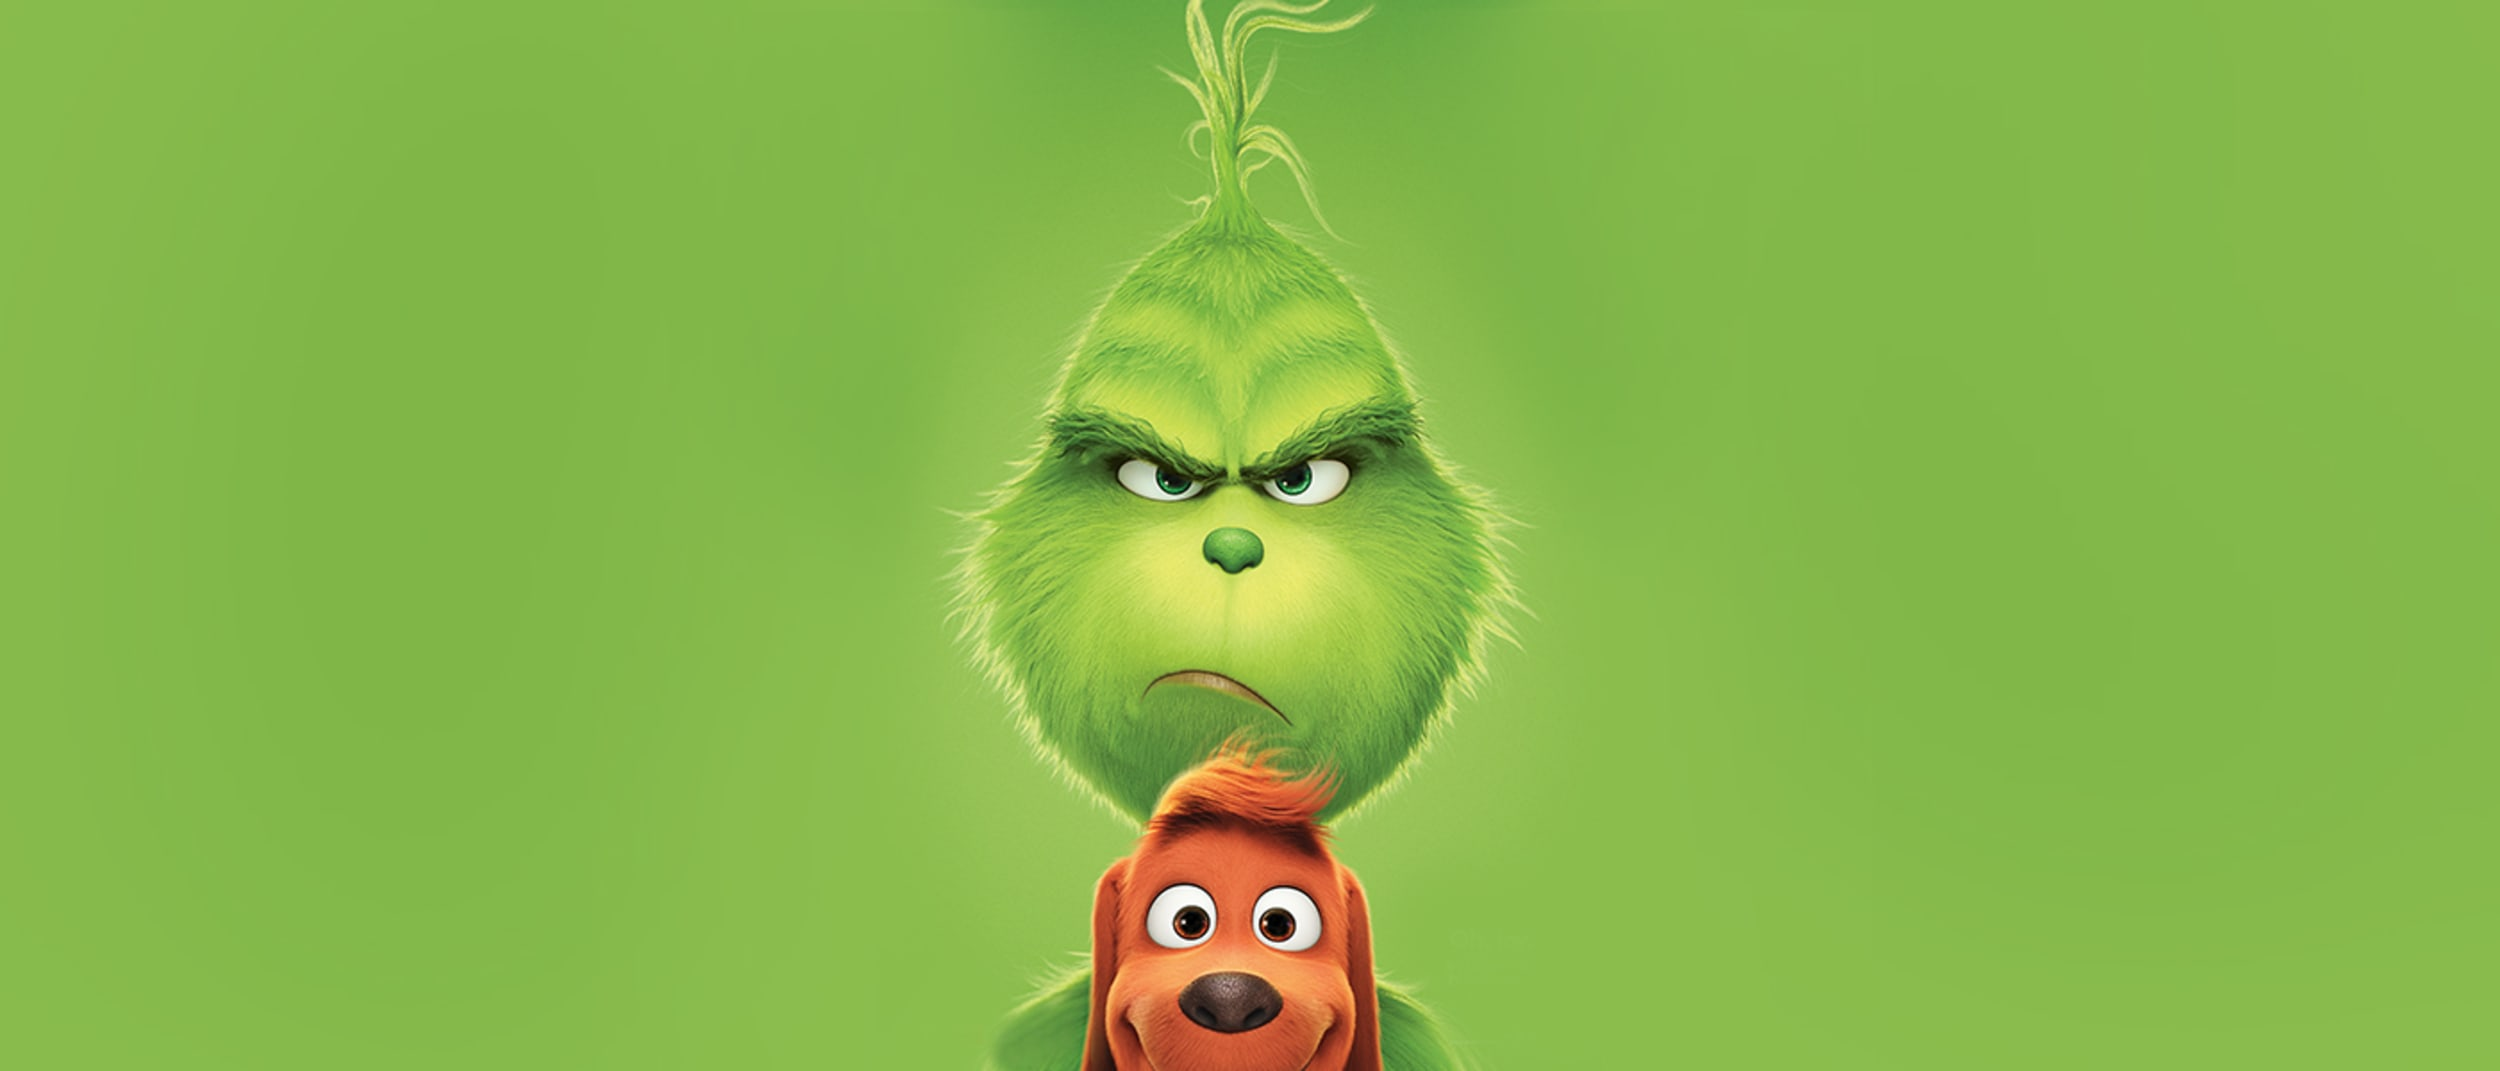 The Grinch in Cinema